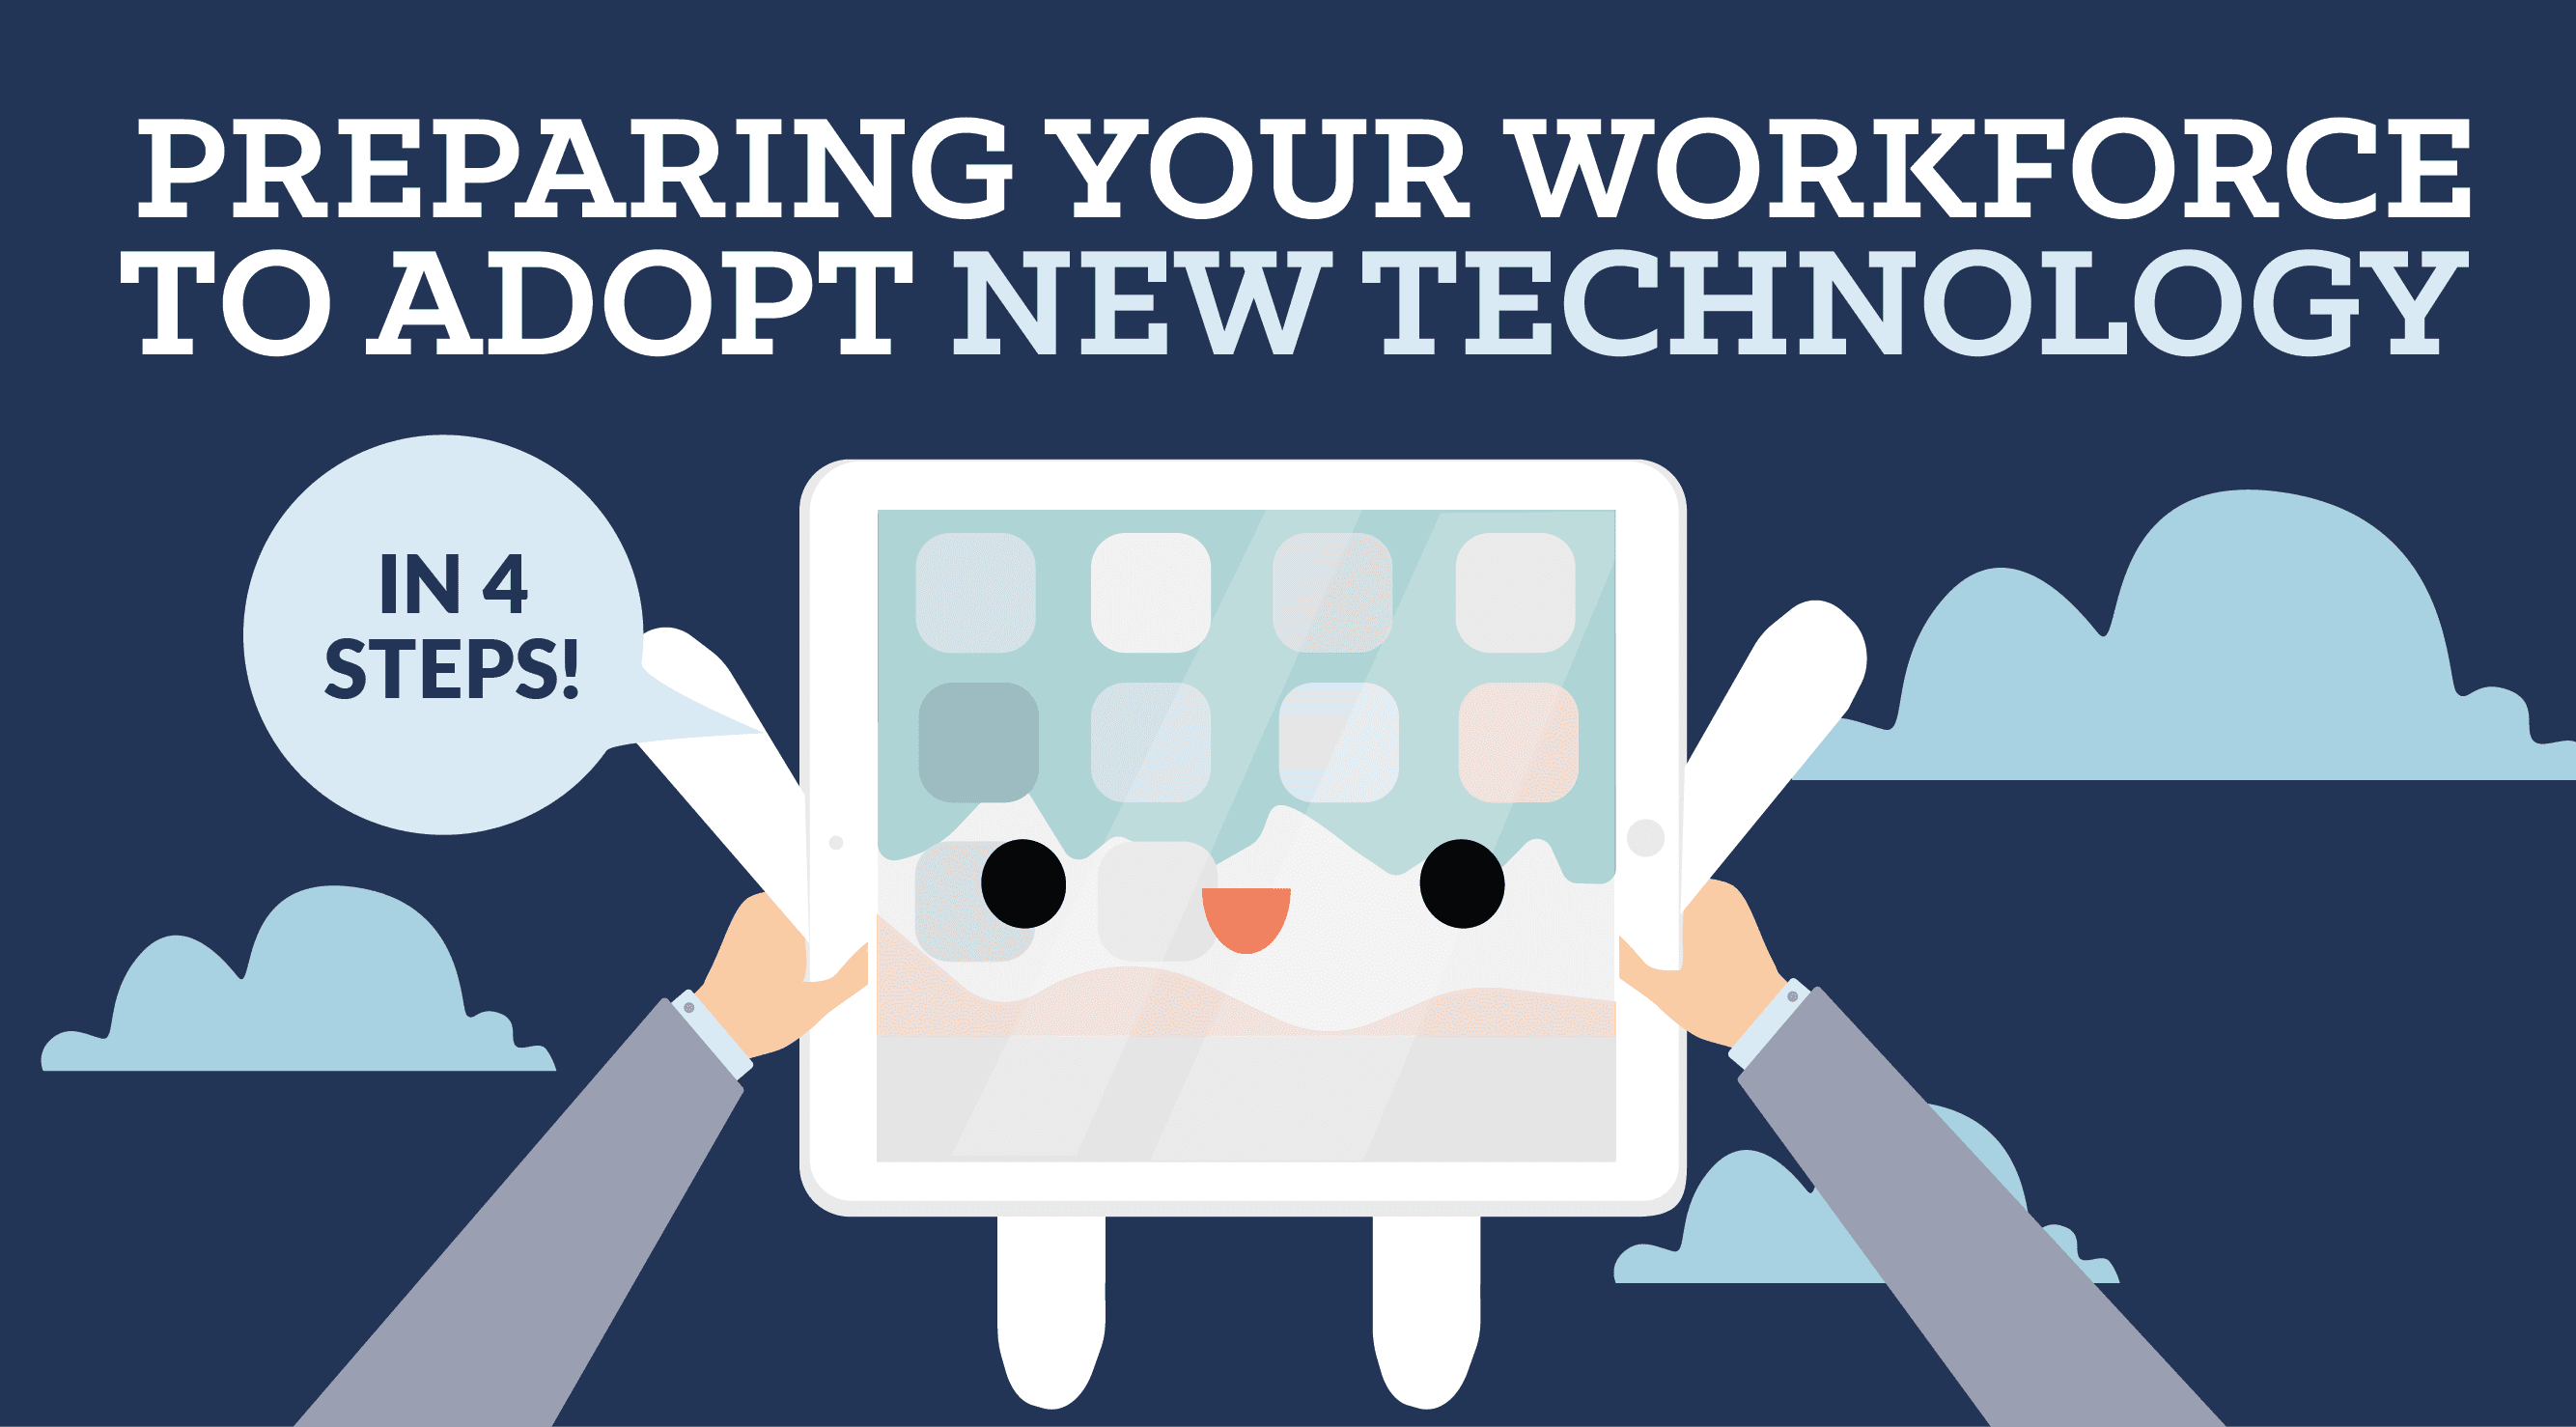 4 Steps for Preparing Your Workforce to Adopt New Technology